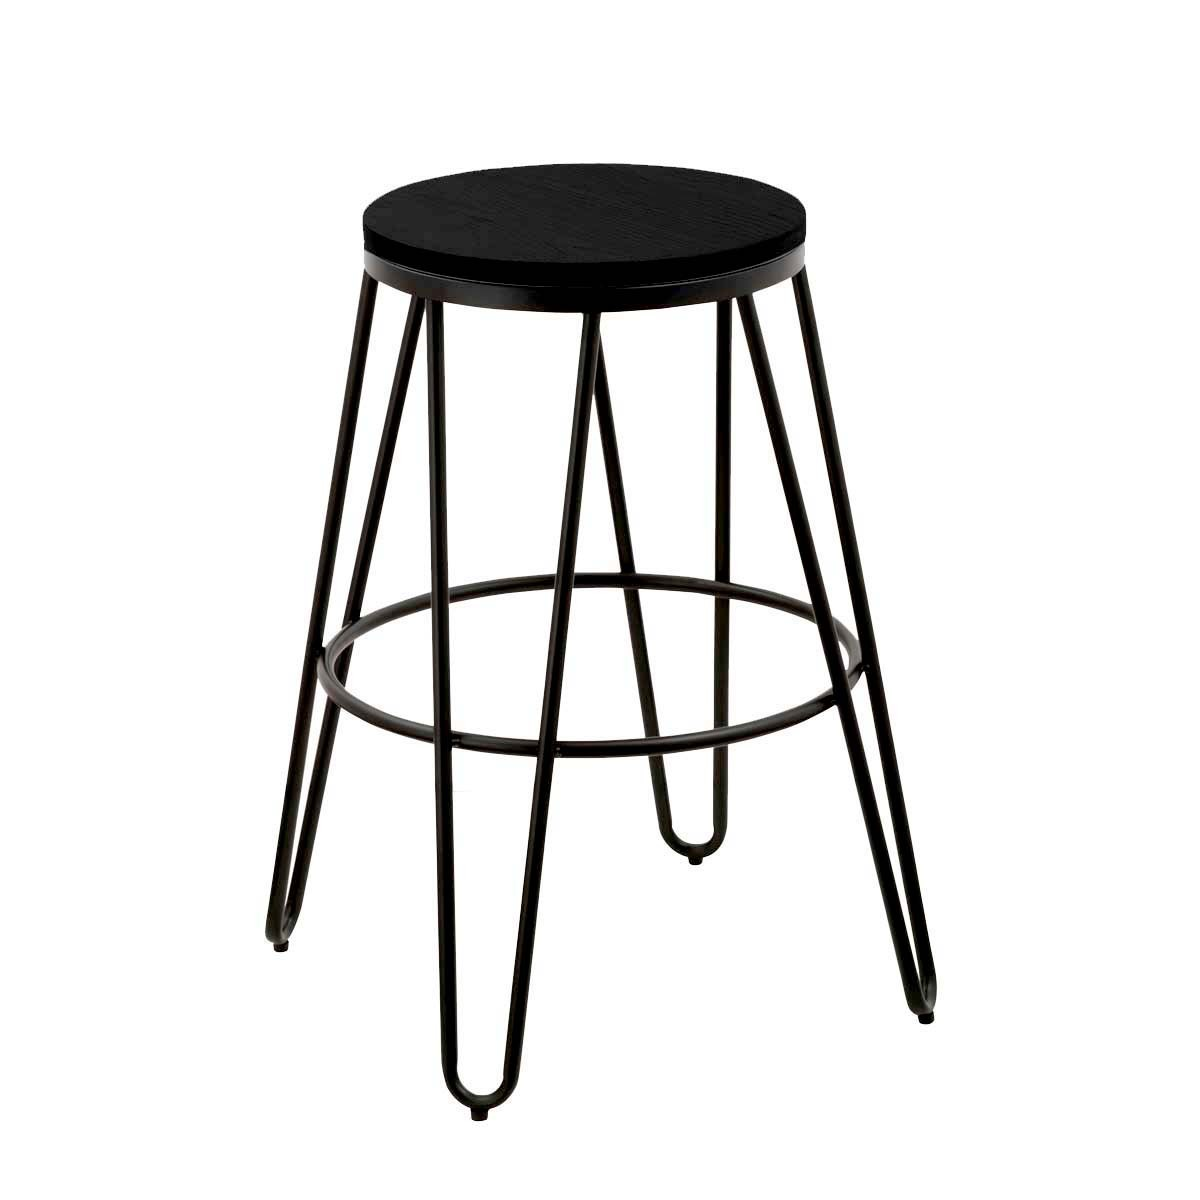 tabouret de bar xavier pauchard mobilier design. Black Bedroom Furniture Sets. Home Design Ideas